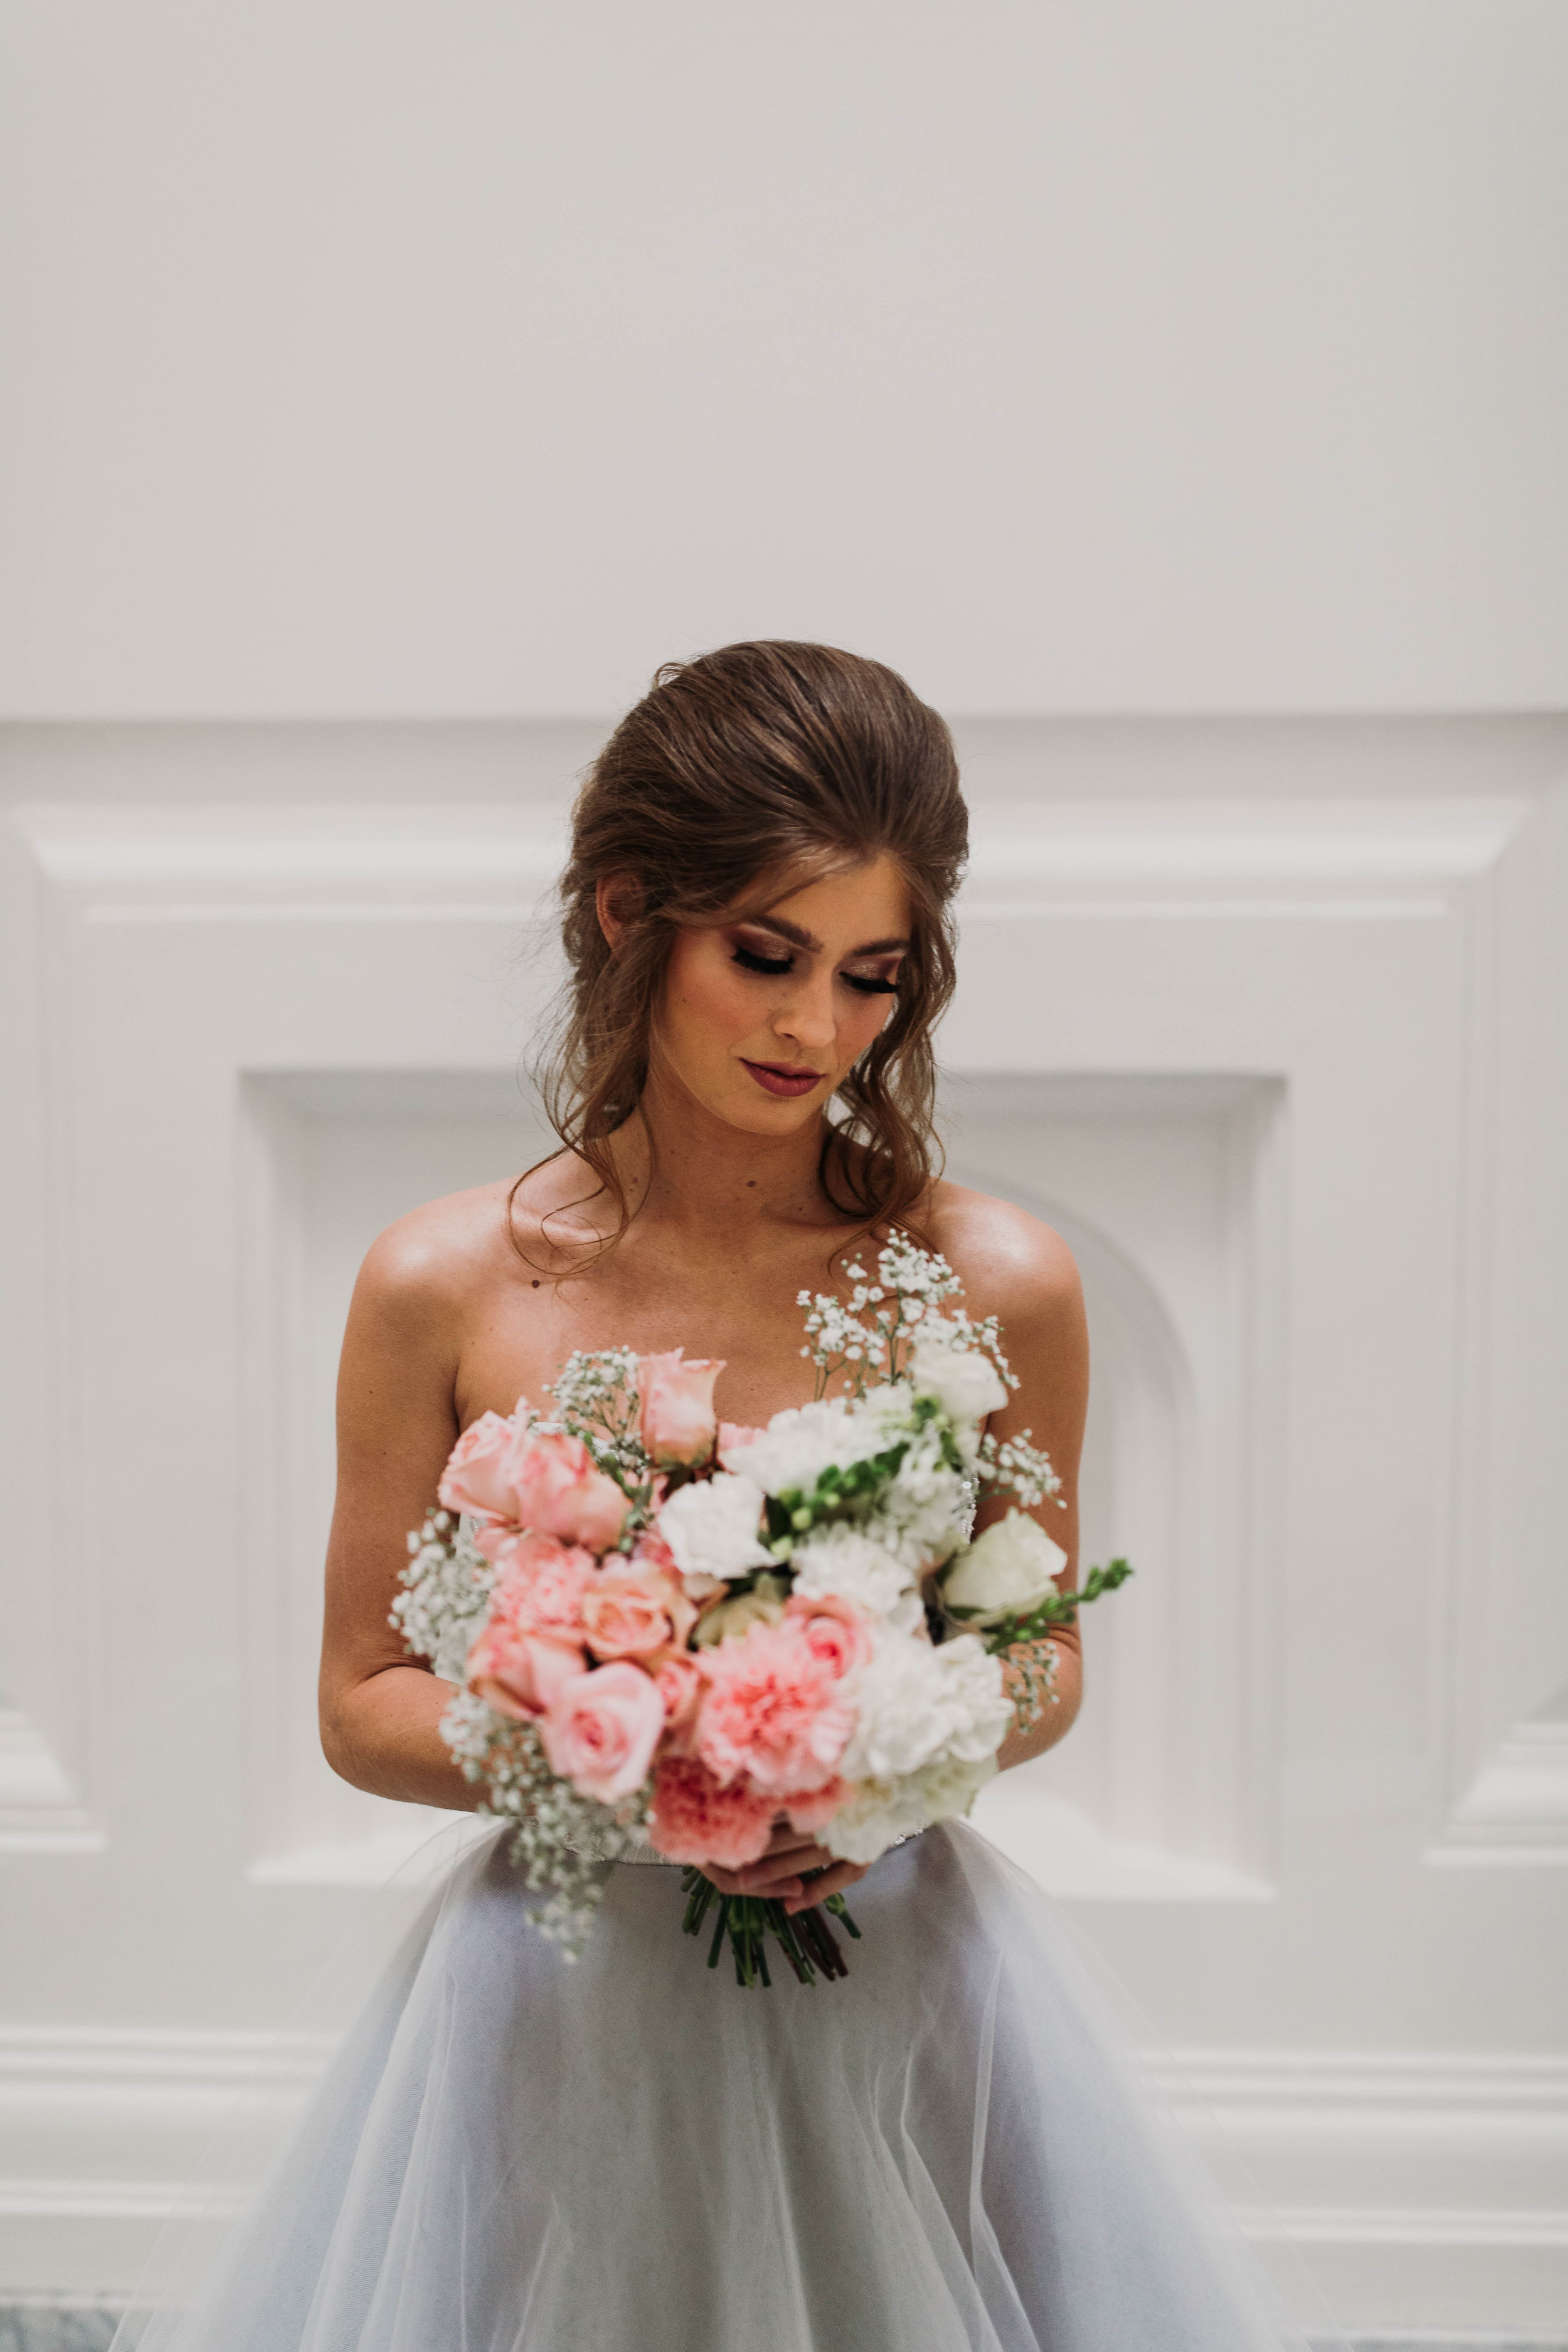 1.) Do Your Homework - When booking your hair and makeup stylist for your wedding, there is a lot to consider. Naturally, you'll start by doing some research for companies in your area. Before you even take the step to reach out to them, review their testimonials to see what previous brides said about their experience. Portfolio's and marketing can be misleading, but a review won't lie, especially if there are multiple bride's with the same story. When looking at price, keep in mind if you focus strictly on the lowest priced artist, you'll end up spending more money booking several trials to find the right fit for yourself. After spending thousands on your venue, photographer and dress, don't skimp out on your face. Your face and hair will be in 90% of the photos and you will want to look back in awe, not horror. Check out what's included with the service, so you know exactly what your getting yourself into.